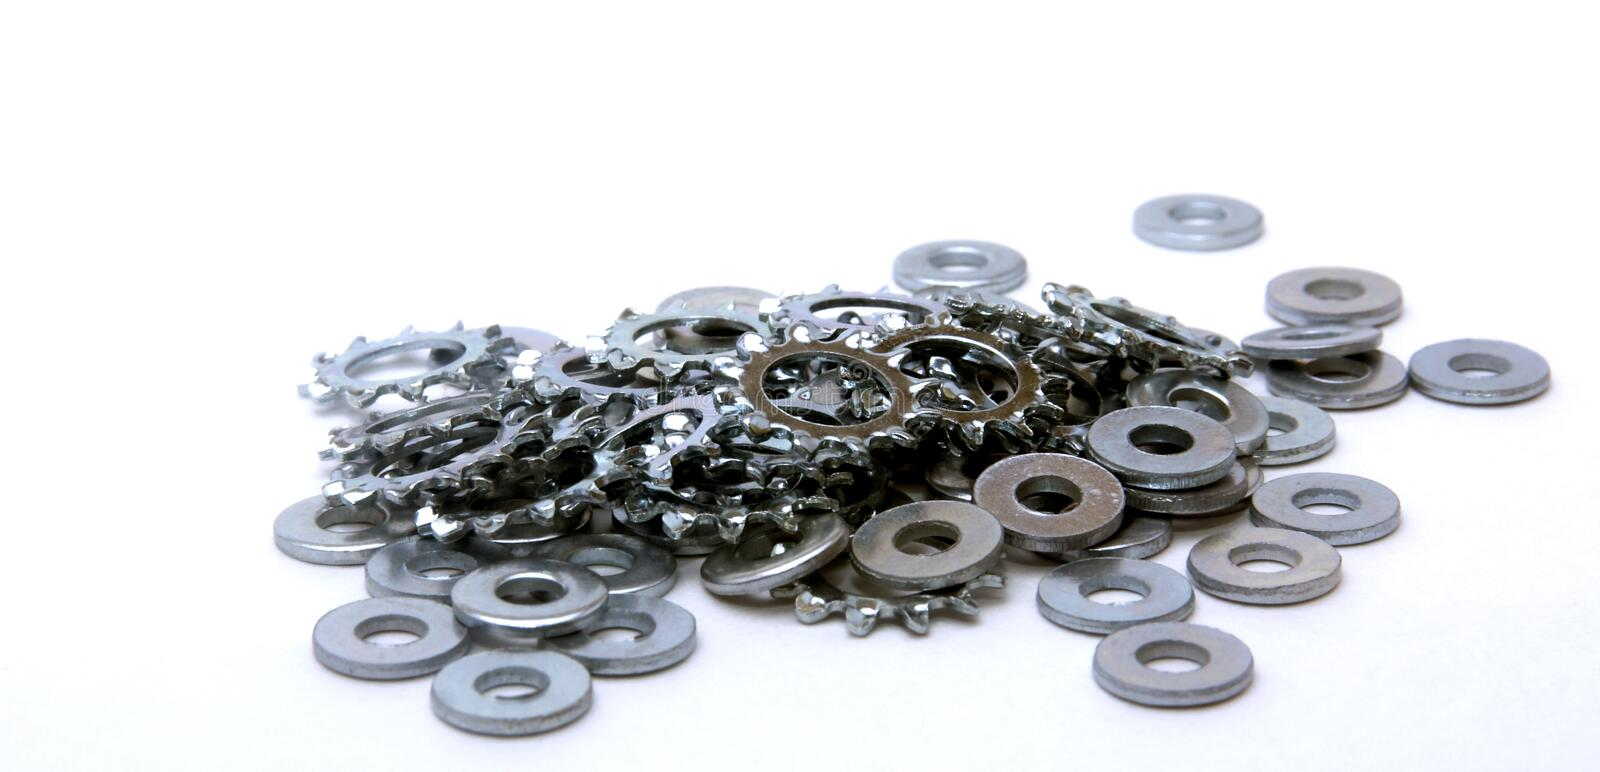 All Kinds Of Washers. A Large pile of locking Washers along with normal ones royalty free stock image